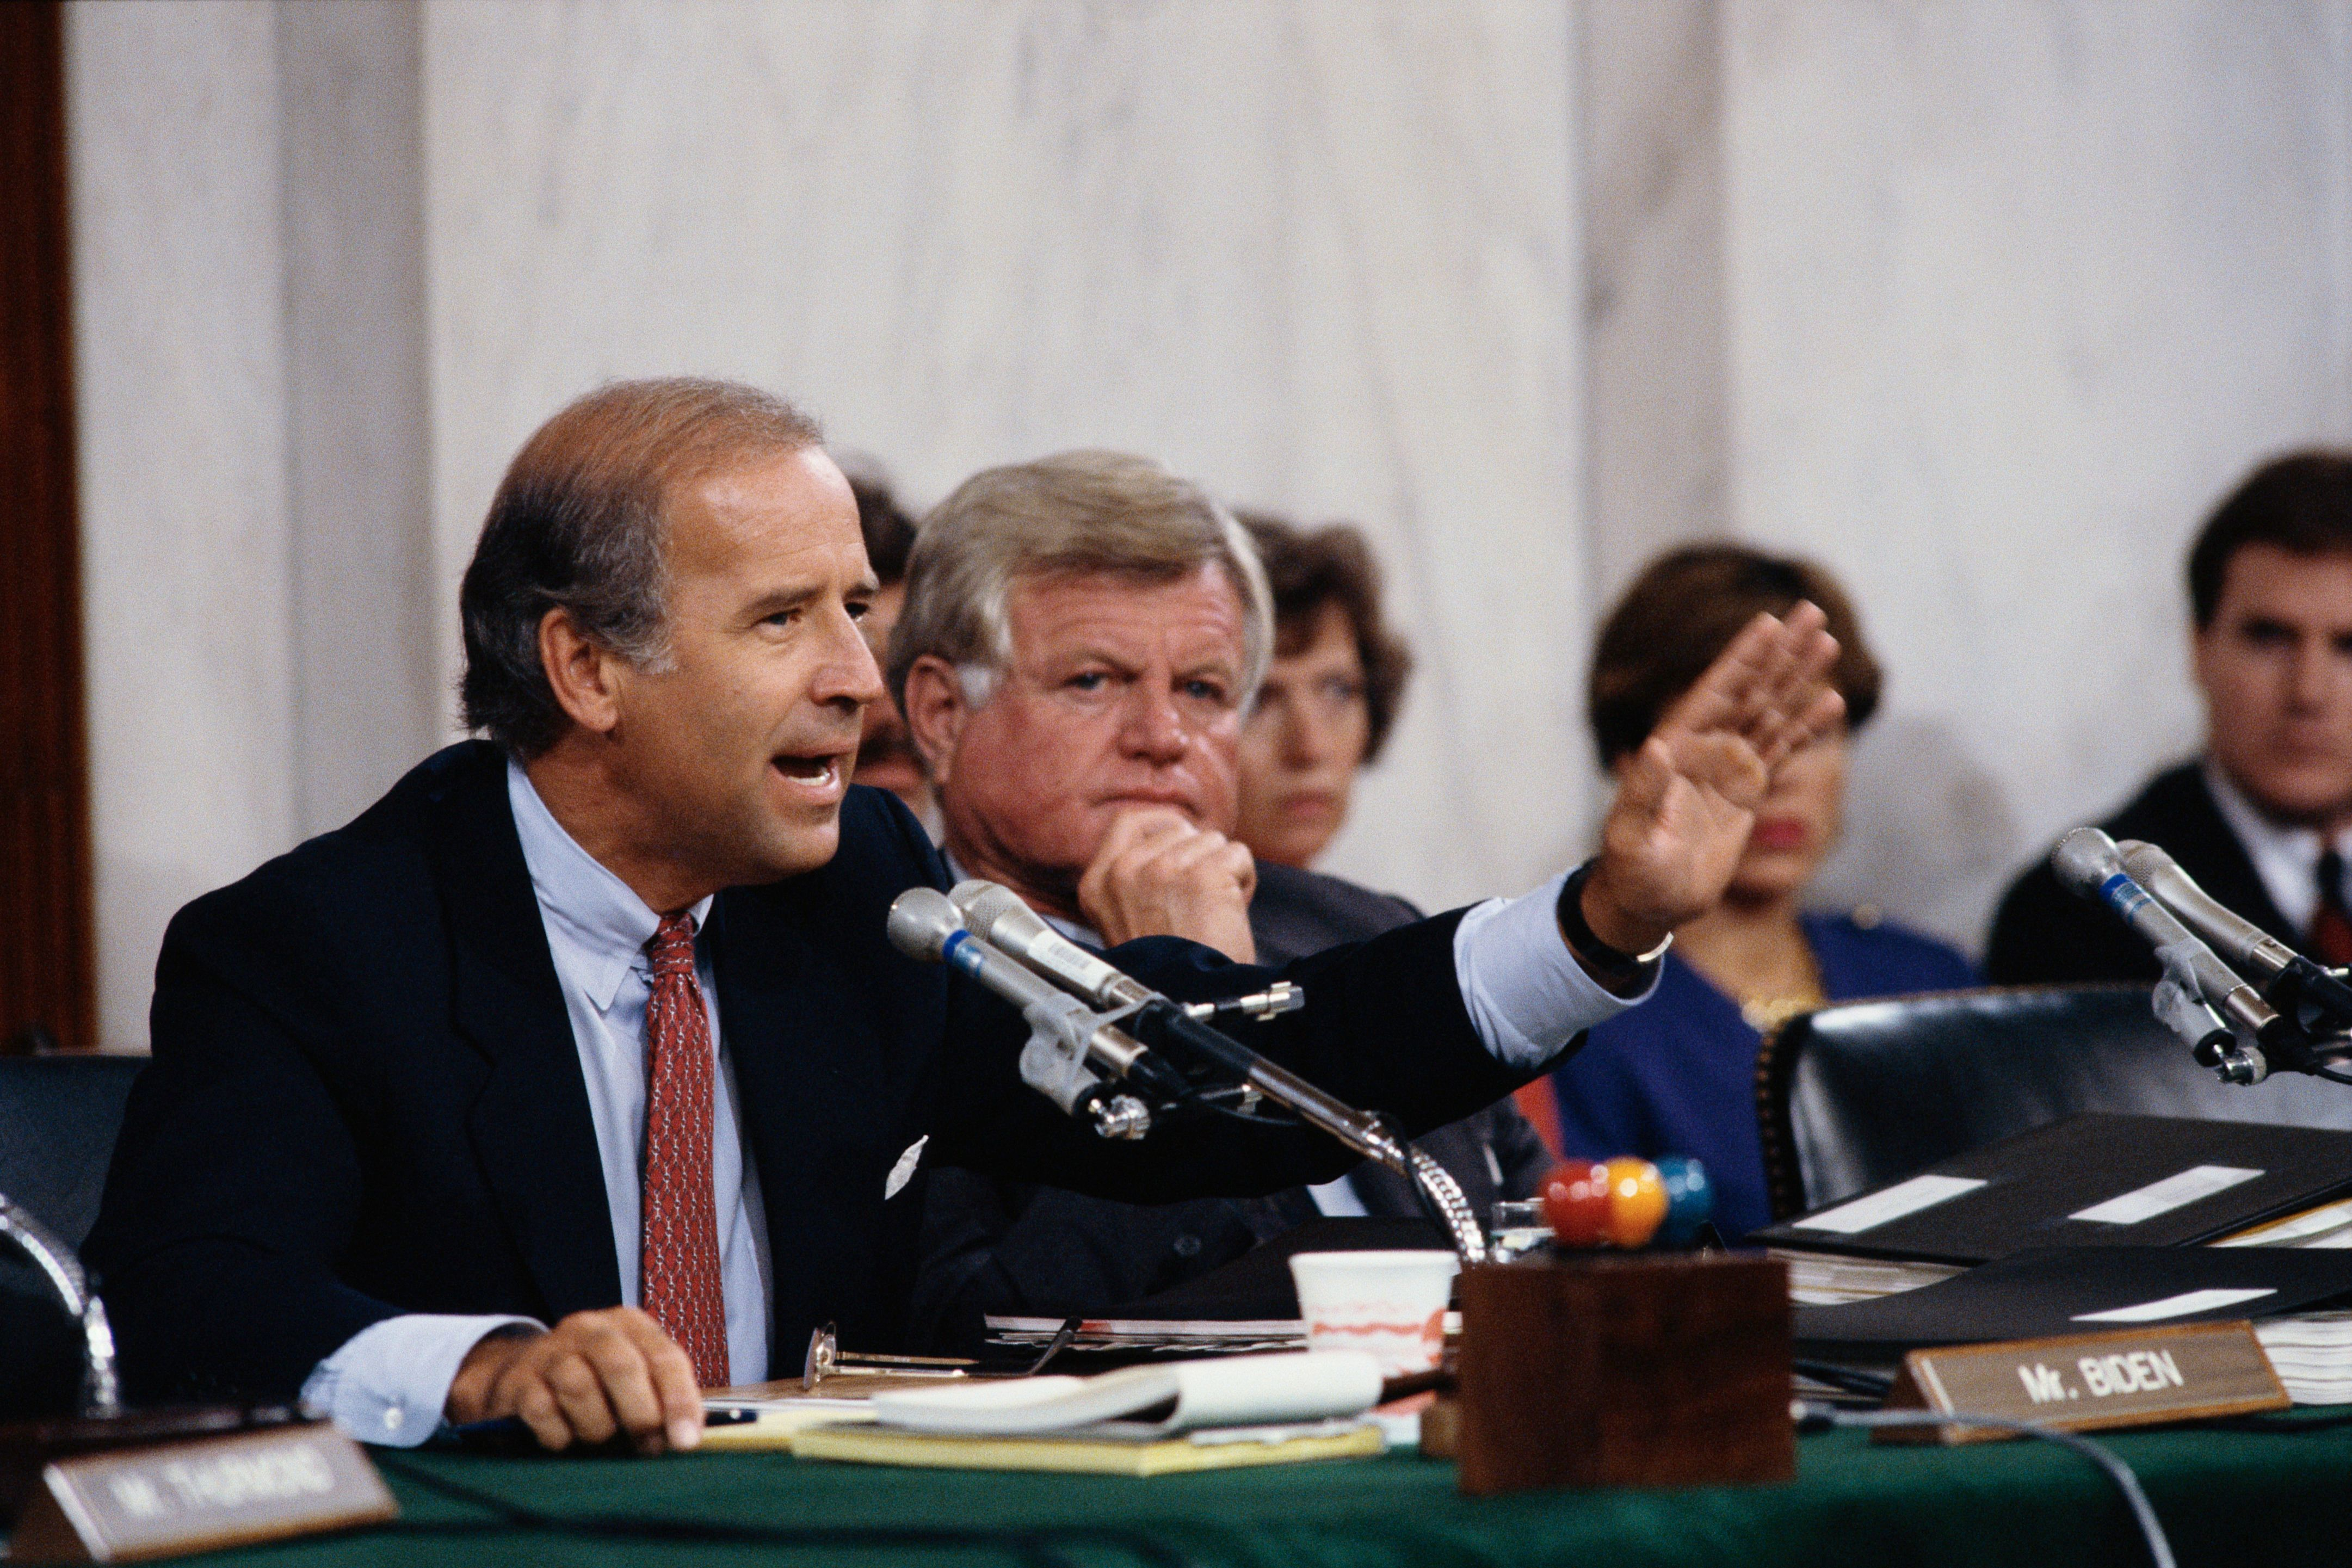 Joe Biden was the chair of the Senate Judiciary Committee during Clarence Thomas' Supreme Court nomination...